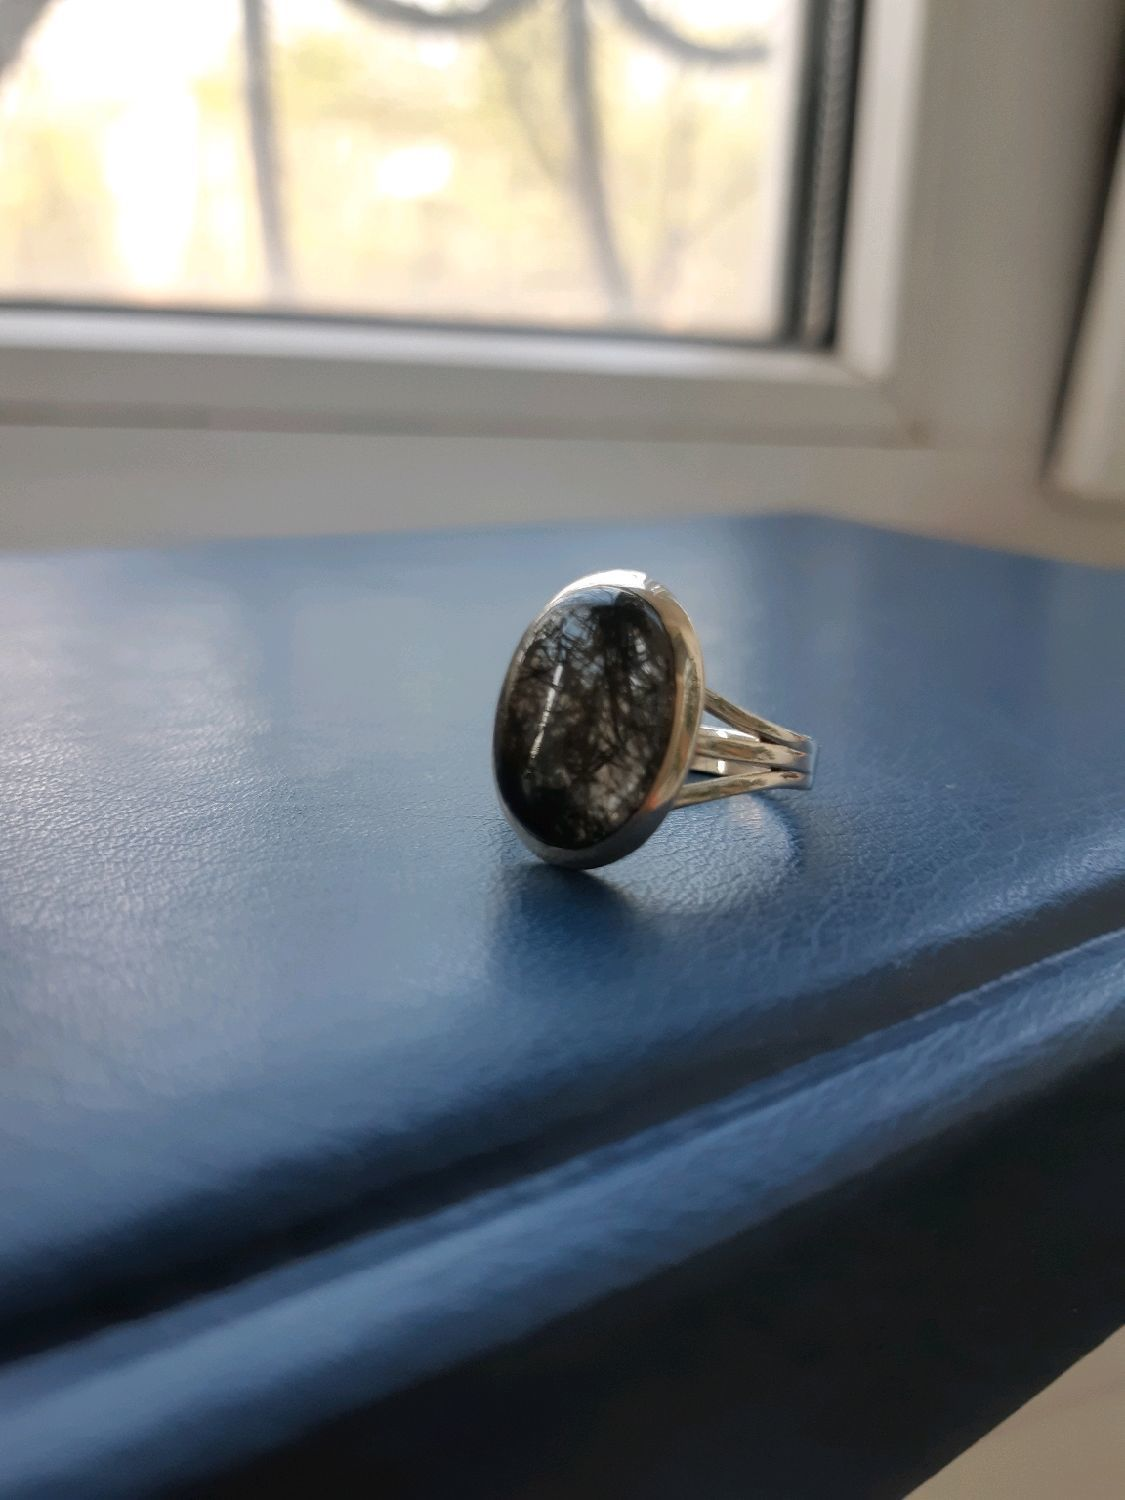 ROMINO-silver ring with tourmaline quartz, Rings, Moscow,  Фото №1